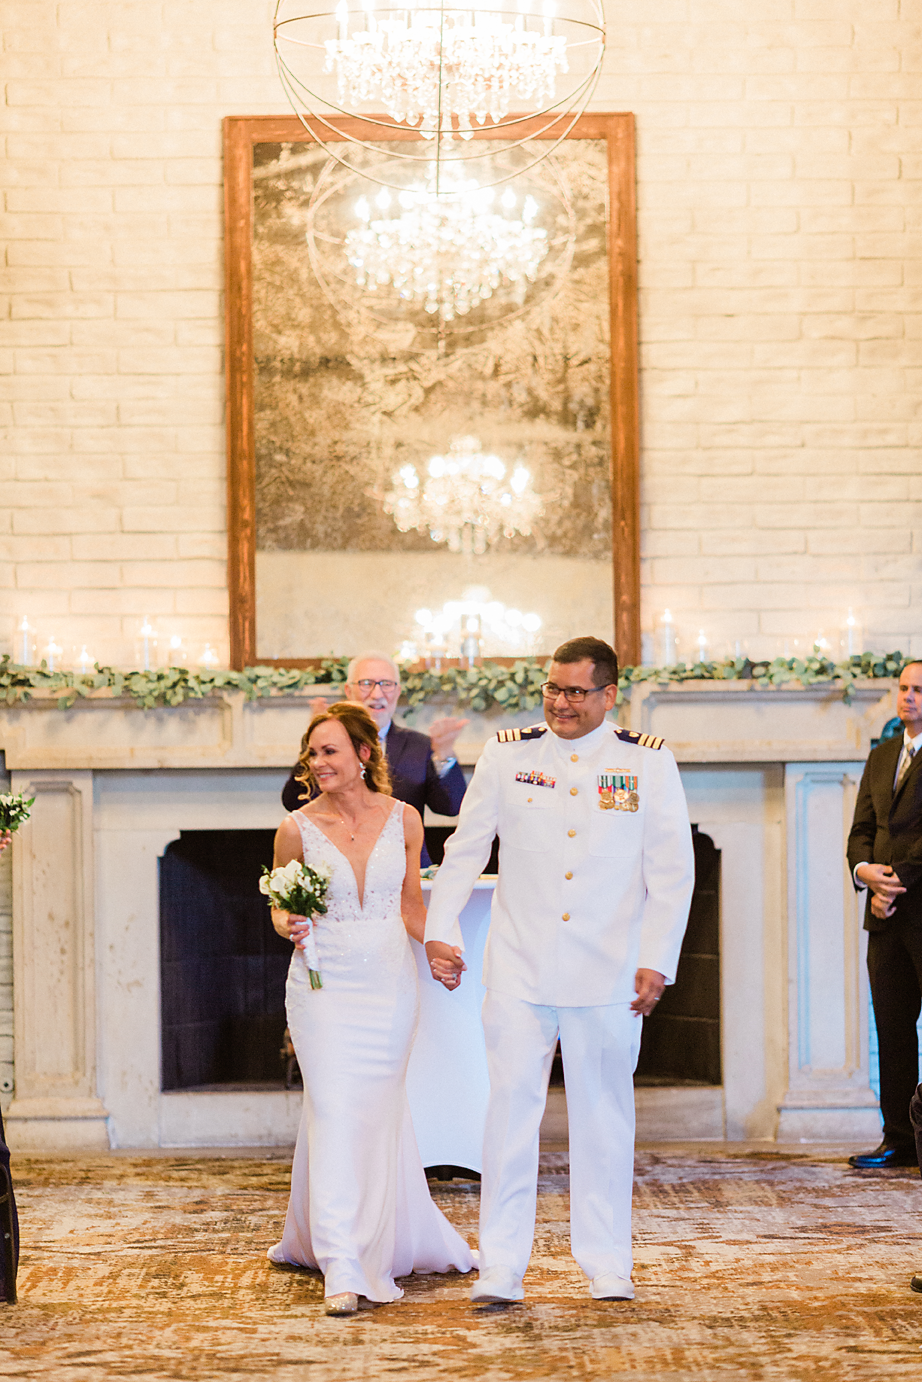 Dallas Wedding photographer Las Colinas Country Club bride and groom walking down aisle Kate Marie Portraiture.png